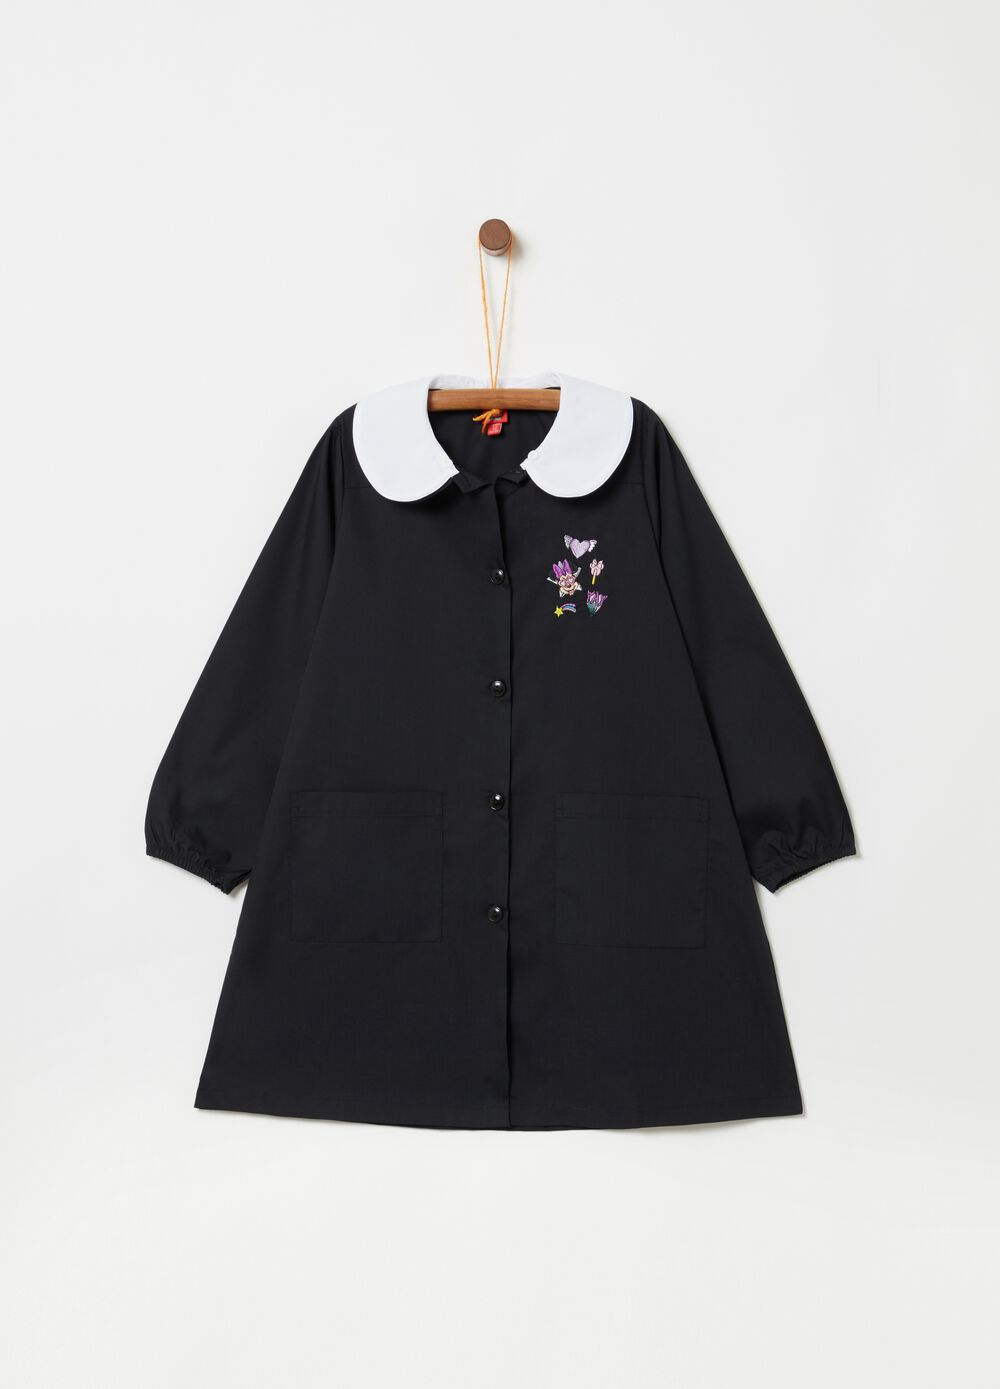 School smock with Minnie motif embroidery